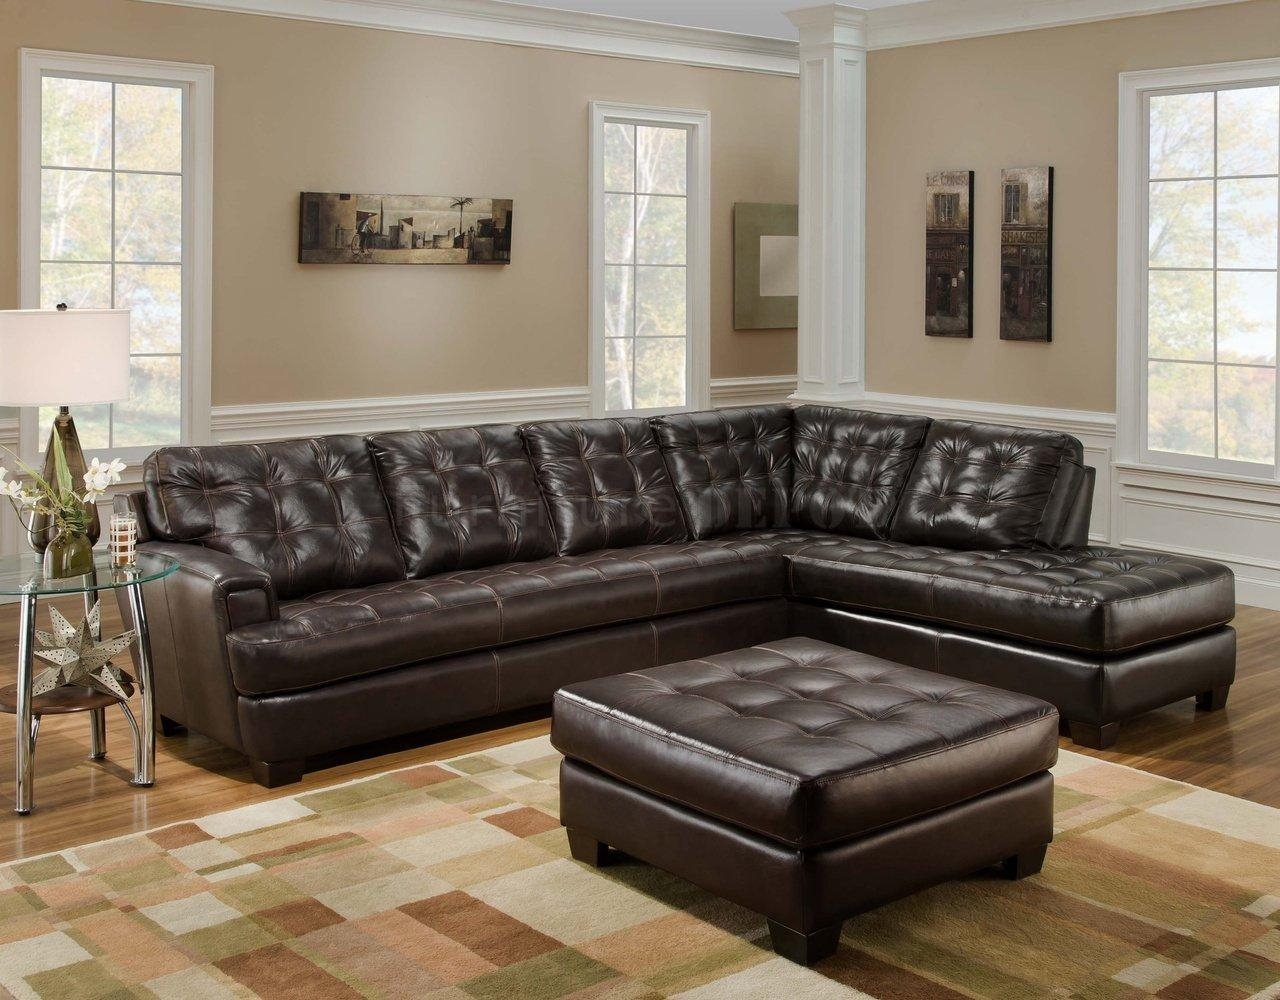 Dark Brown Leather Sofa Dye Pinterest The World S Catalog Of Ideas Within Brown Leather Tufted Sofas (View 20 of 20)